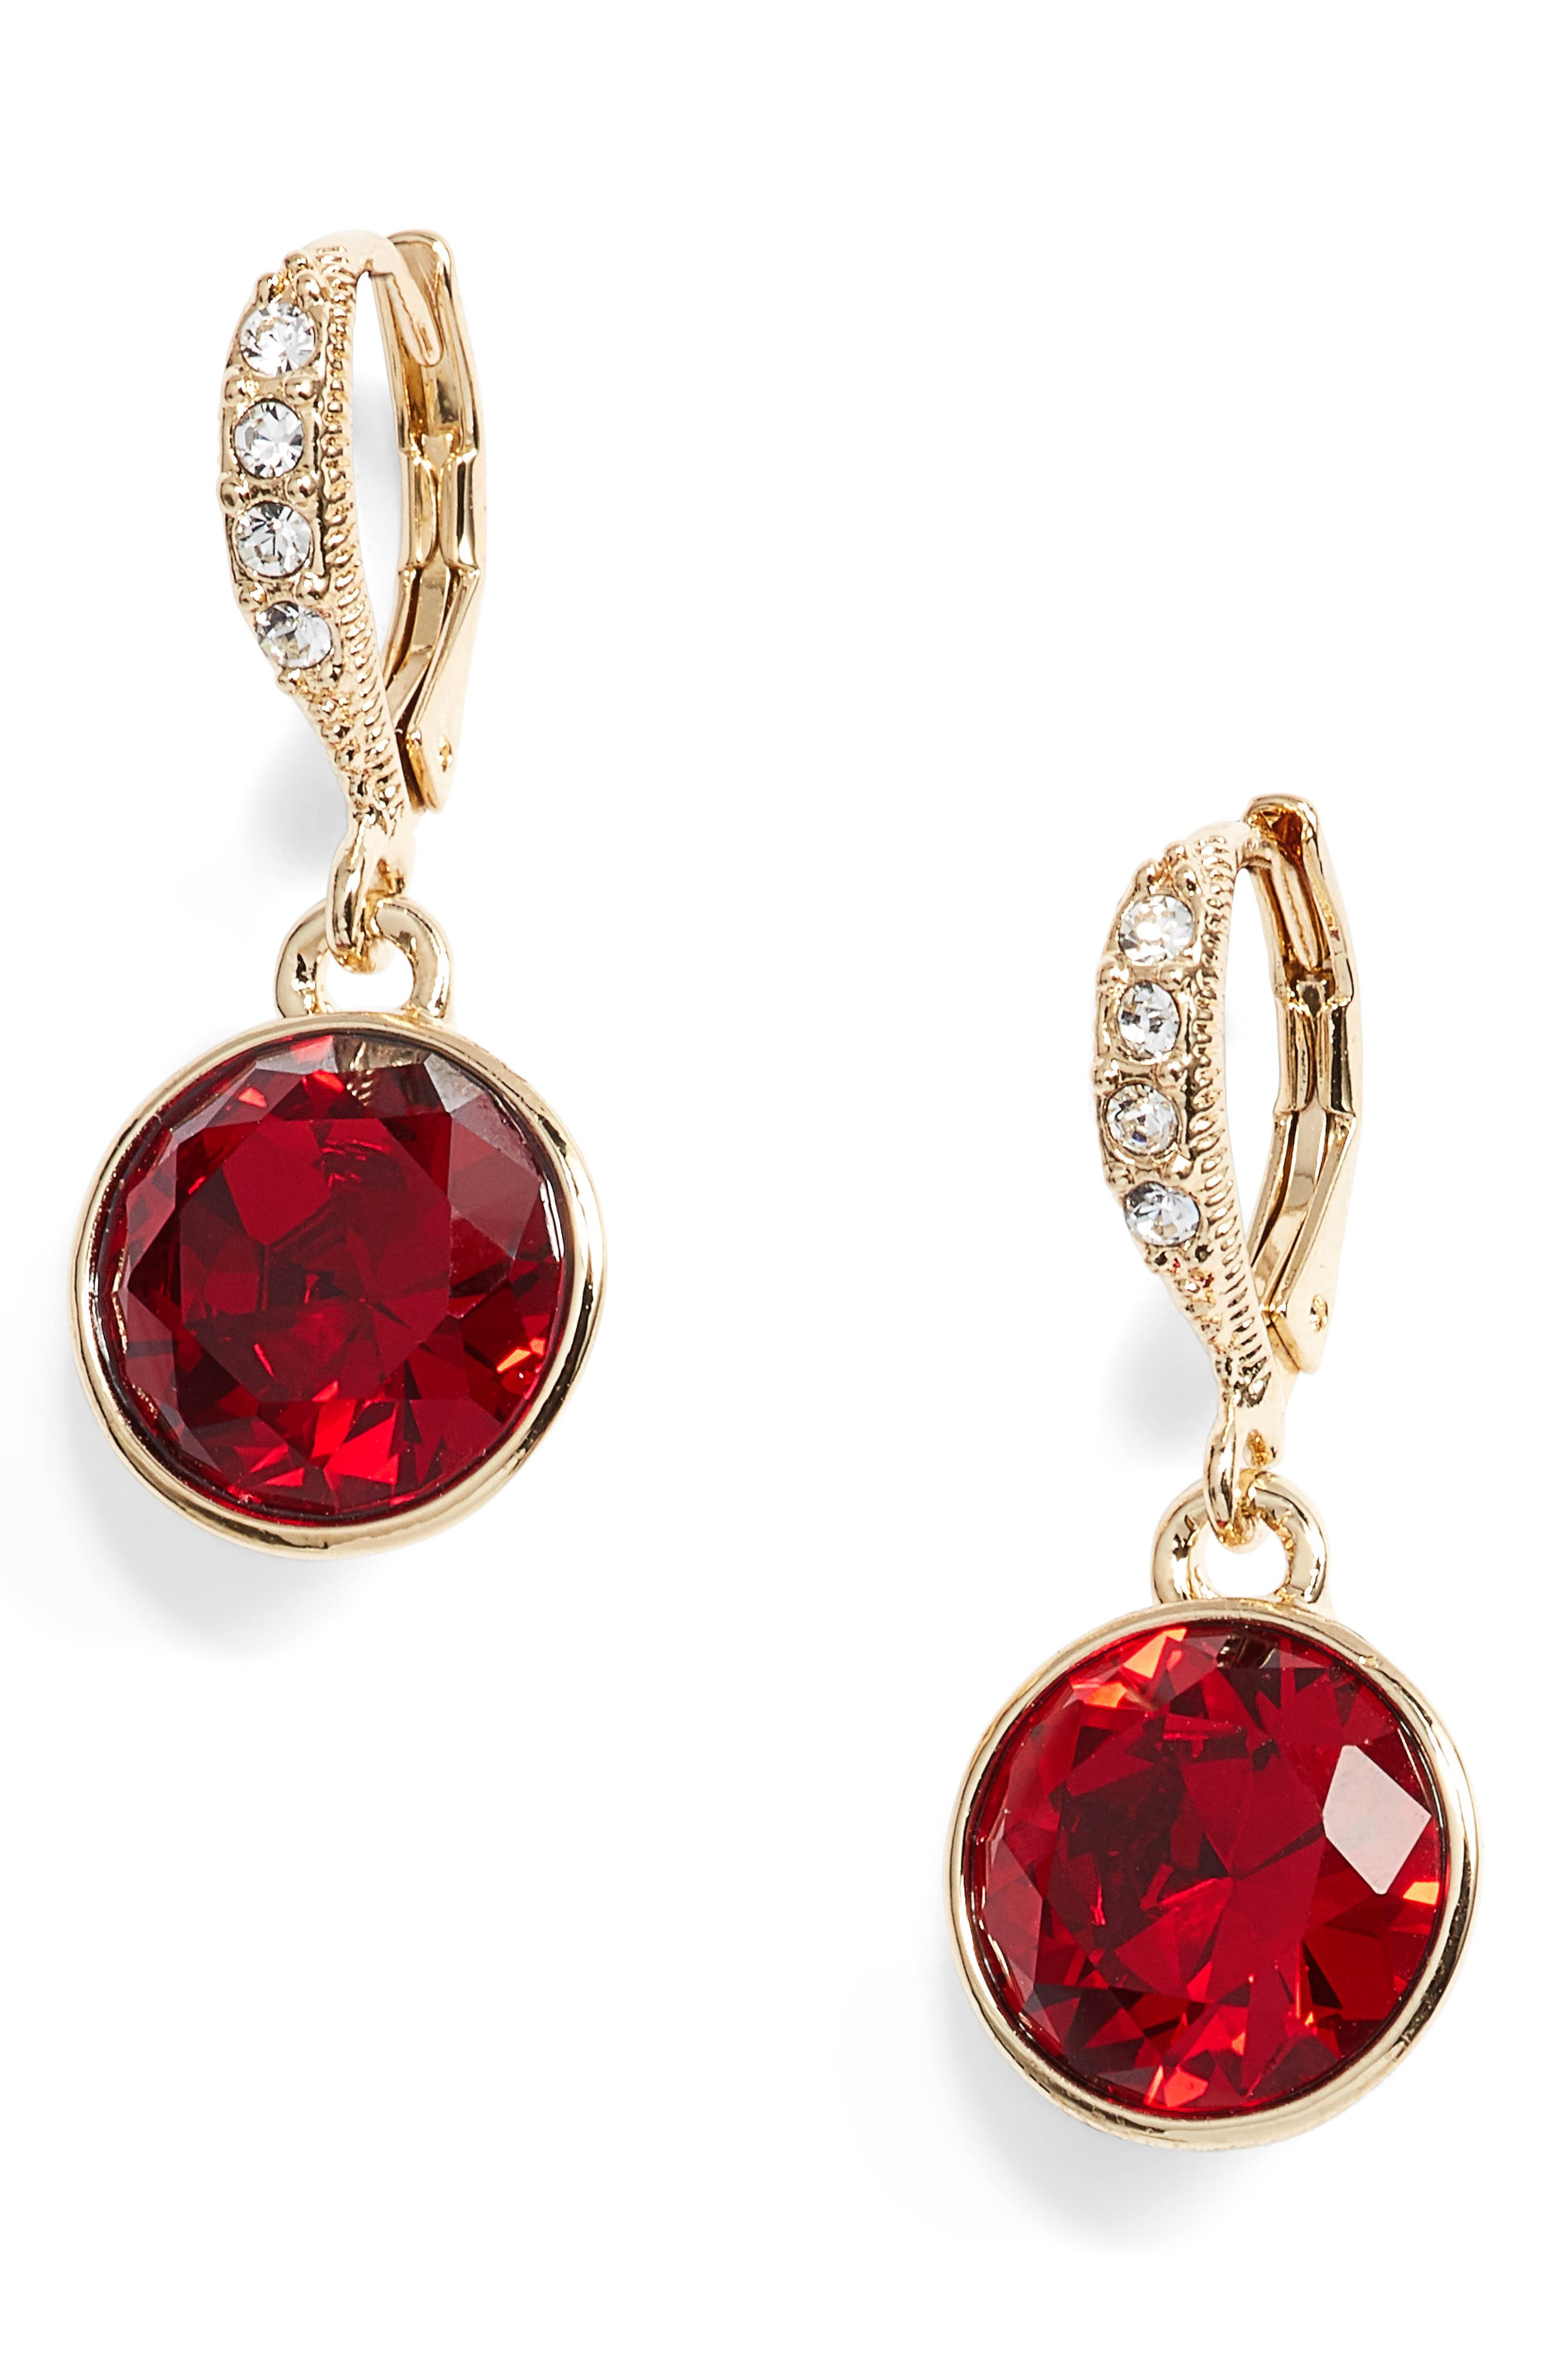 Round Drop Earrings,                         Main,                         color, Red/ Gold